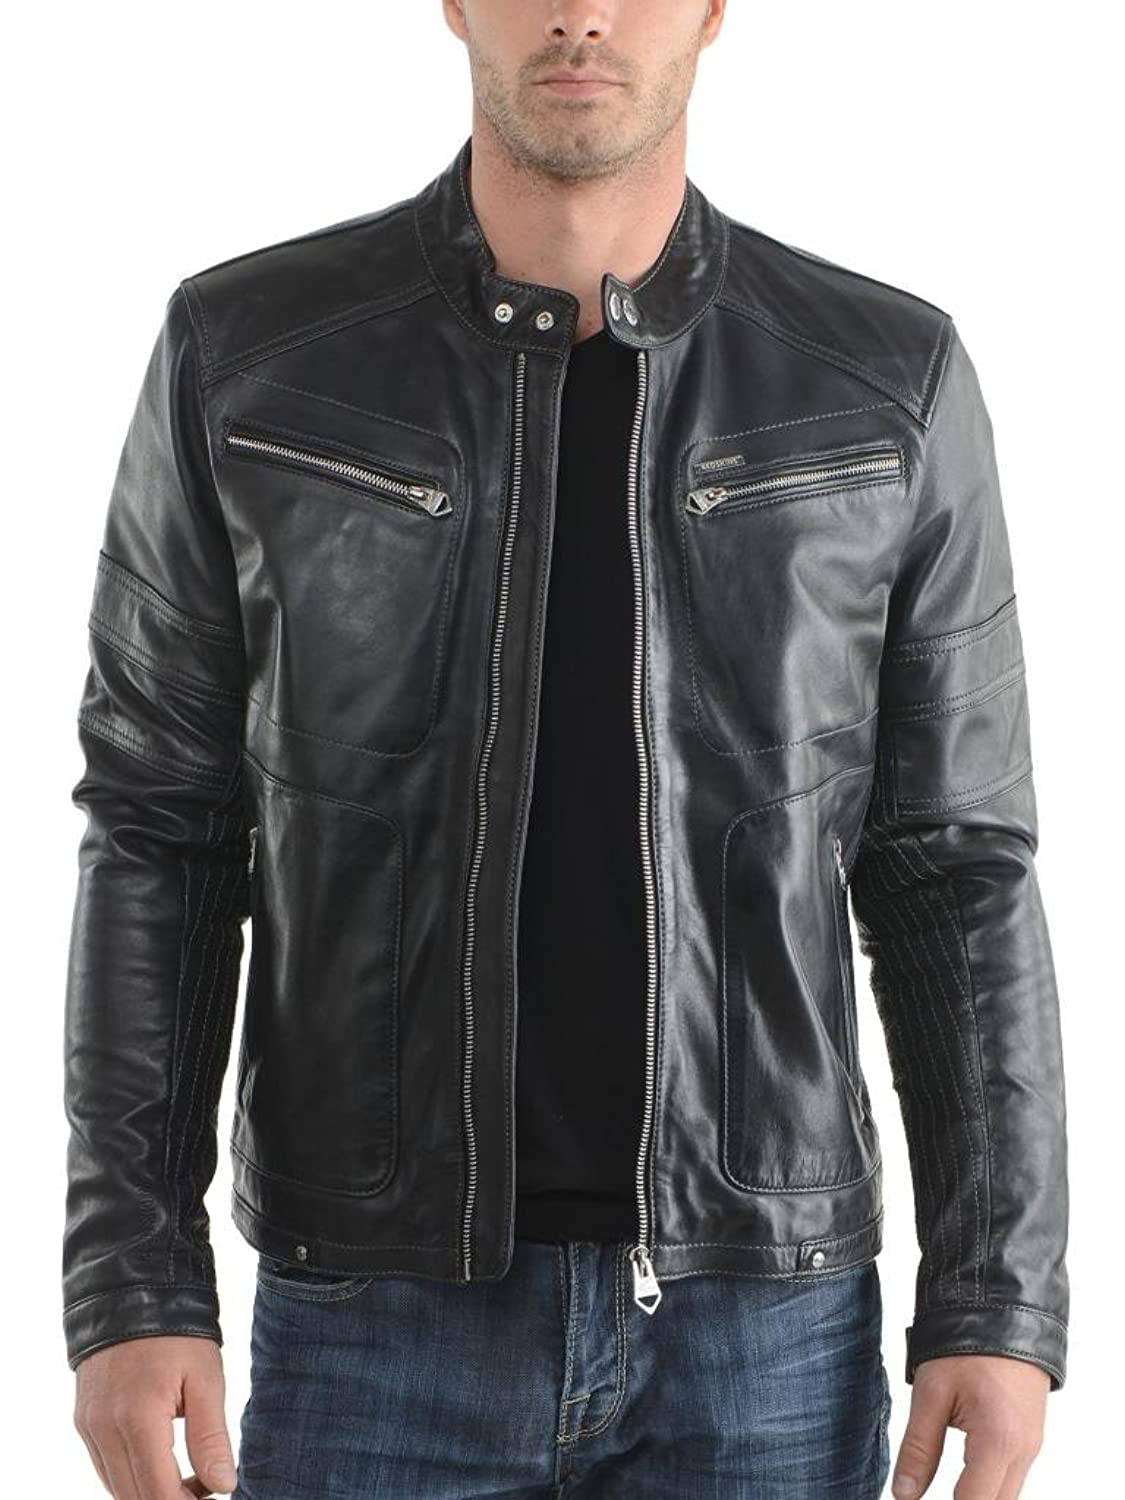 ABDys Men's Lambskin Leather jacket DKC307 Black